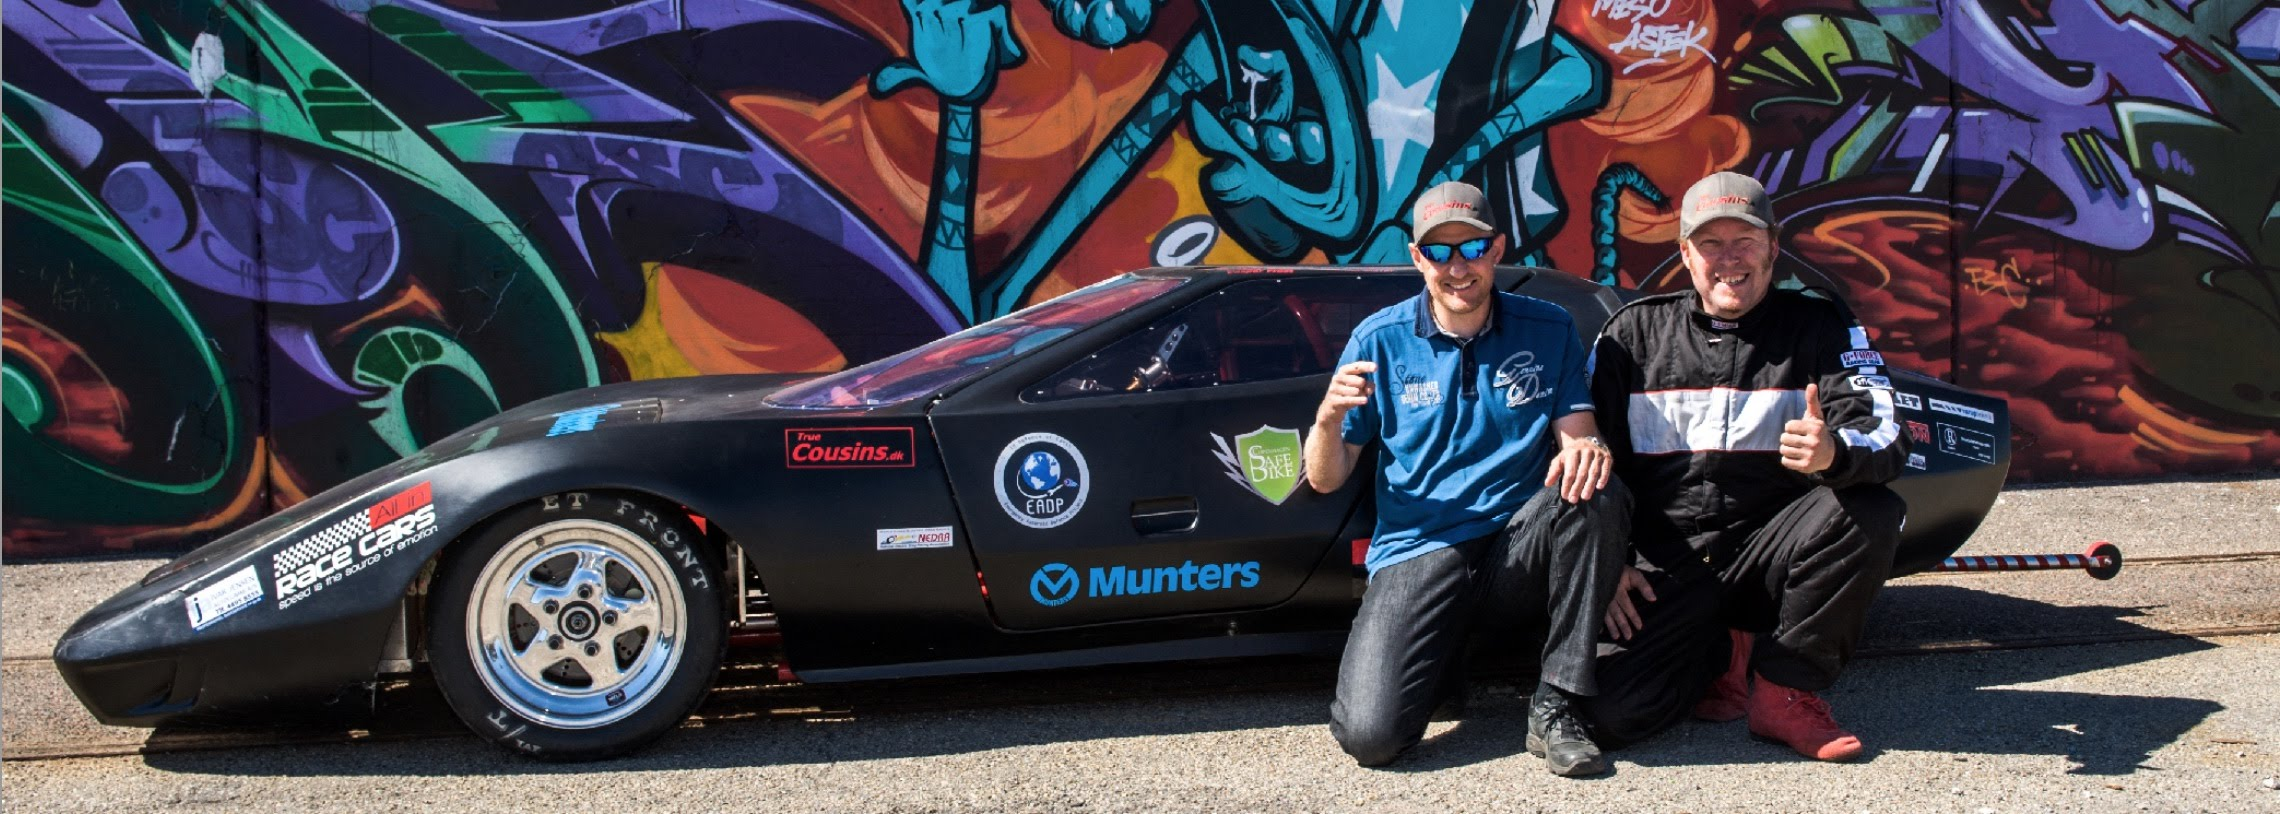 Electric Drag Racing With True Cousins — The Cars | CleanTechnica